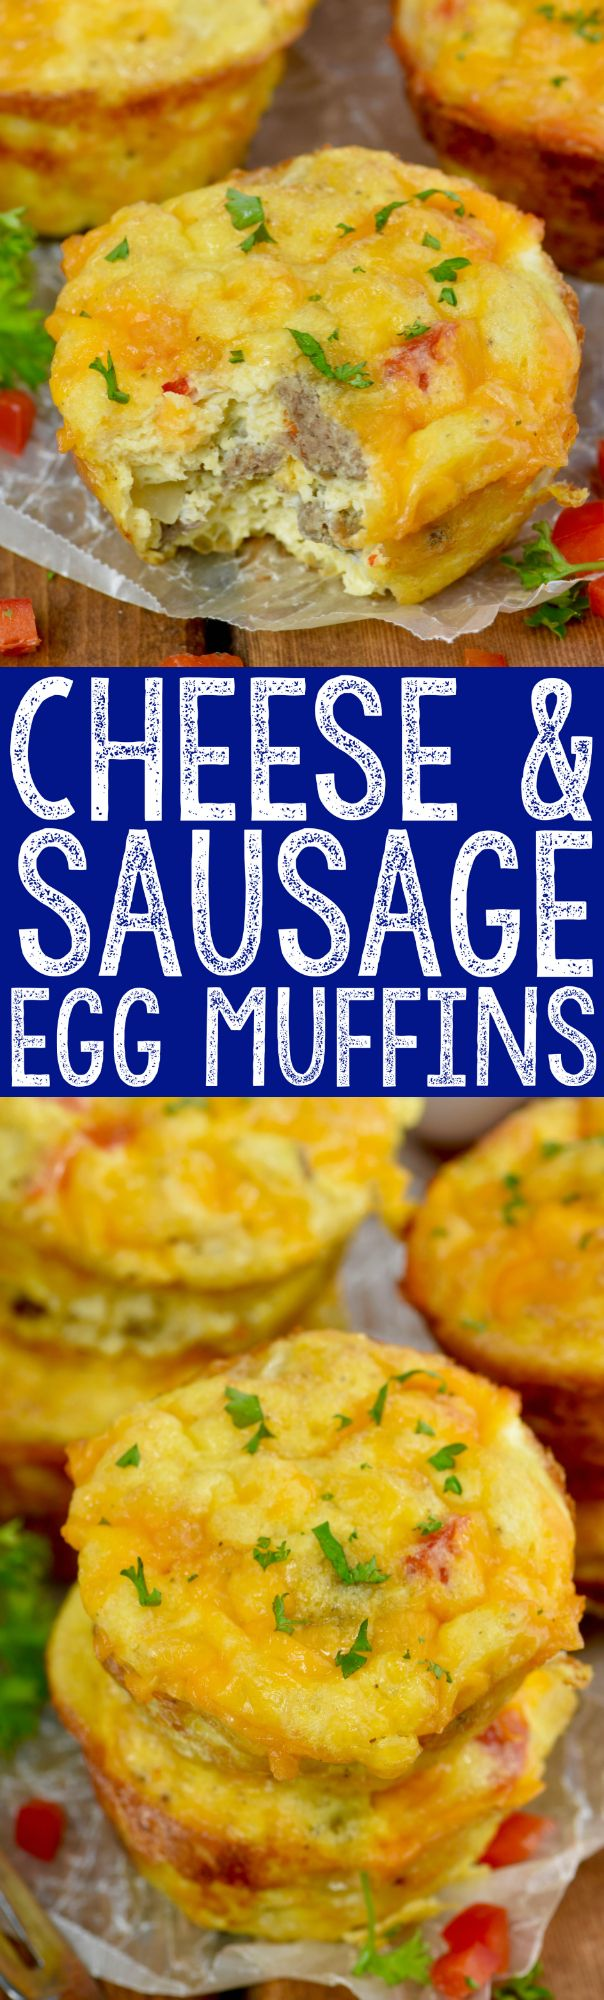 These Cheese and Sausage Egg Muffins come together in a flash! Perfect for eating right away or freezing, a great breakfast on the run! @jennieorecipes #ad